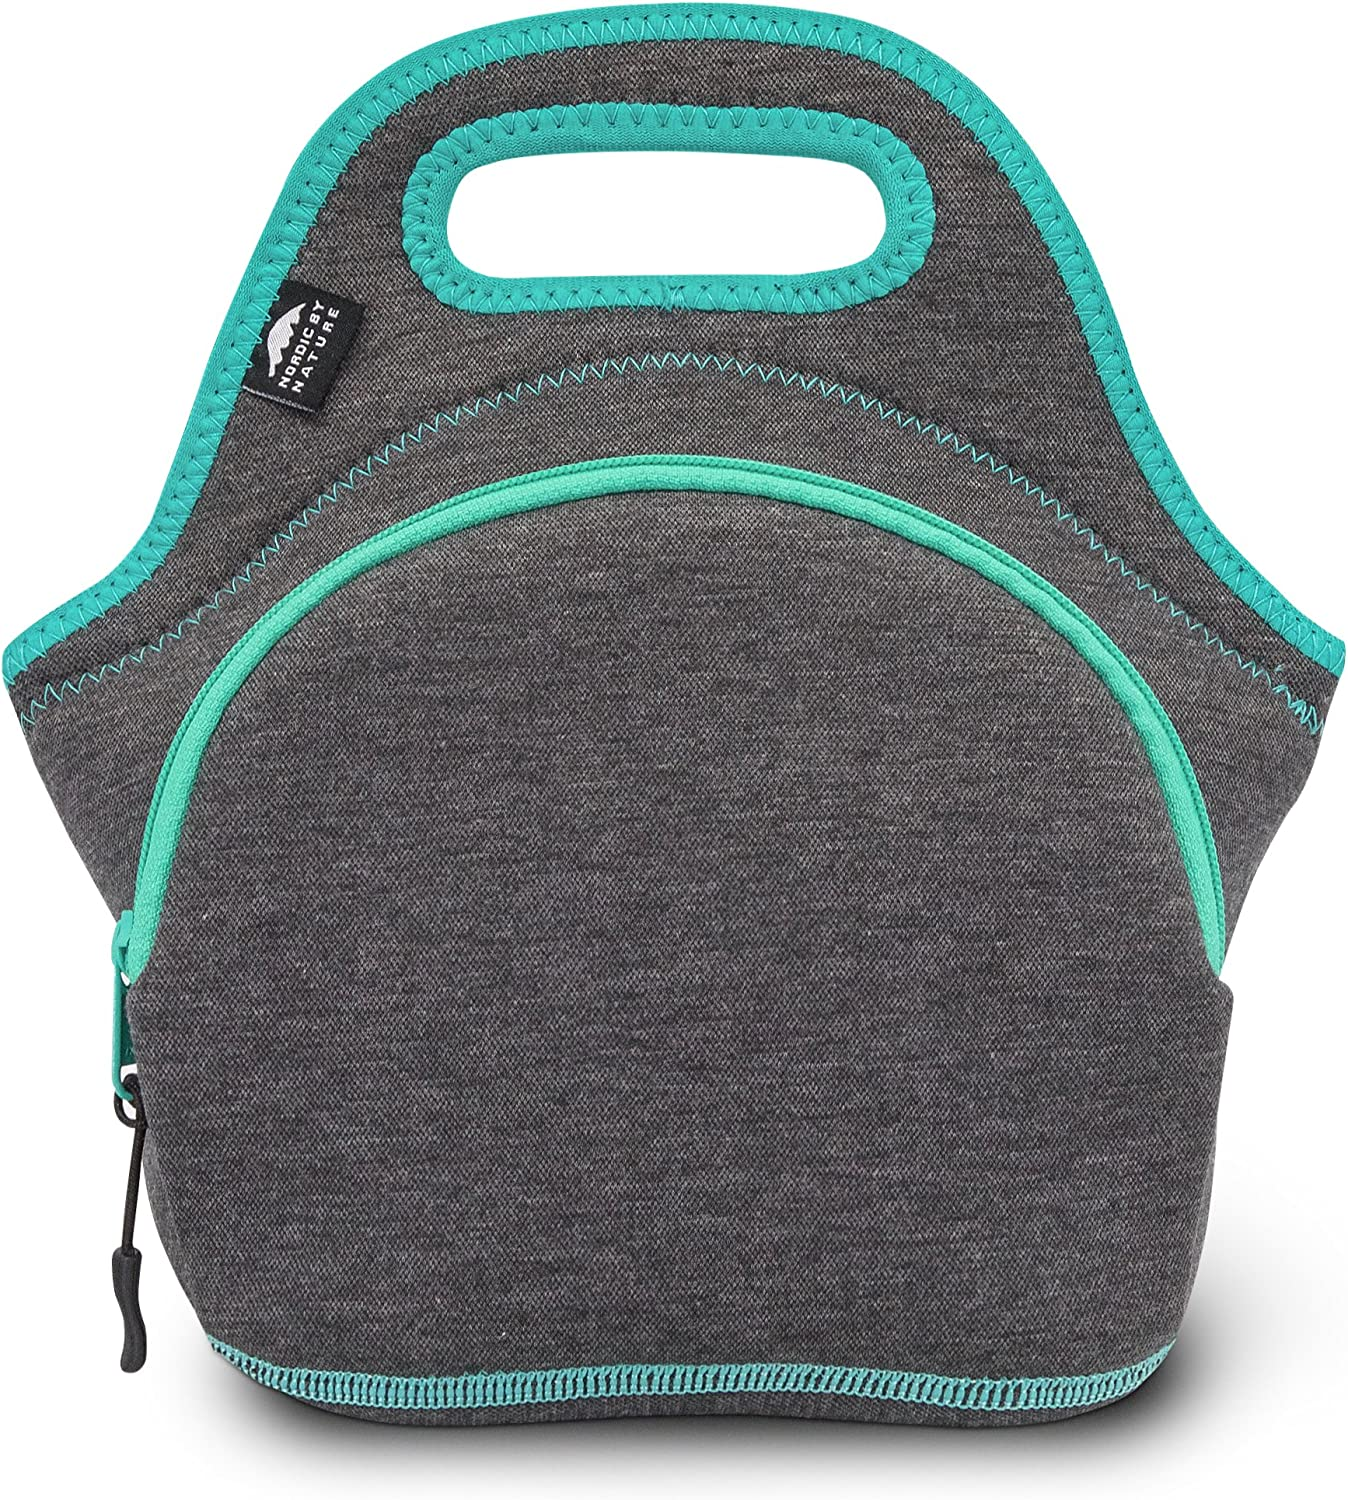 Nordic By Nature Neoprene Lunch Bag for Women & Lunch Tote for Kids Insulated Lunch Bag Reusable Washable Thick Neoprene & Soft Cotton Feel, Premium Stitching, Outside Pocket, (M) Dark Gray/Lagoon